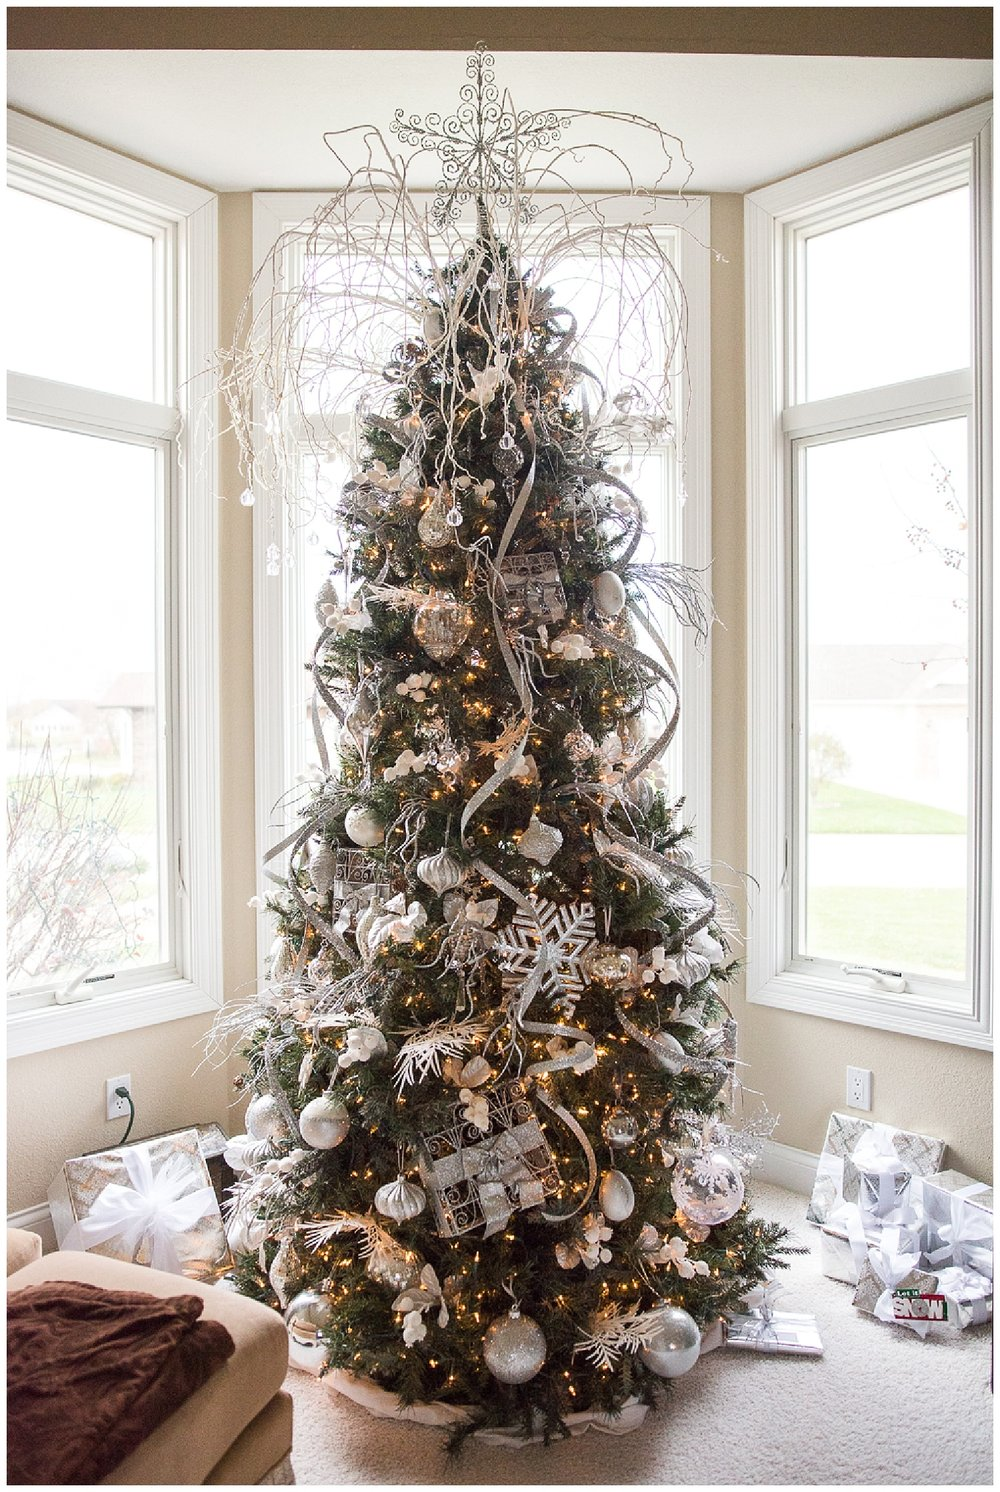 The Waterford Tree.  This one sits proudly in her front window and contains Waterford ornaments.